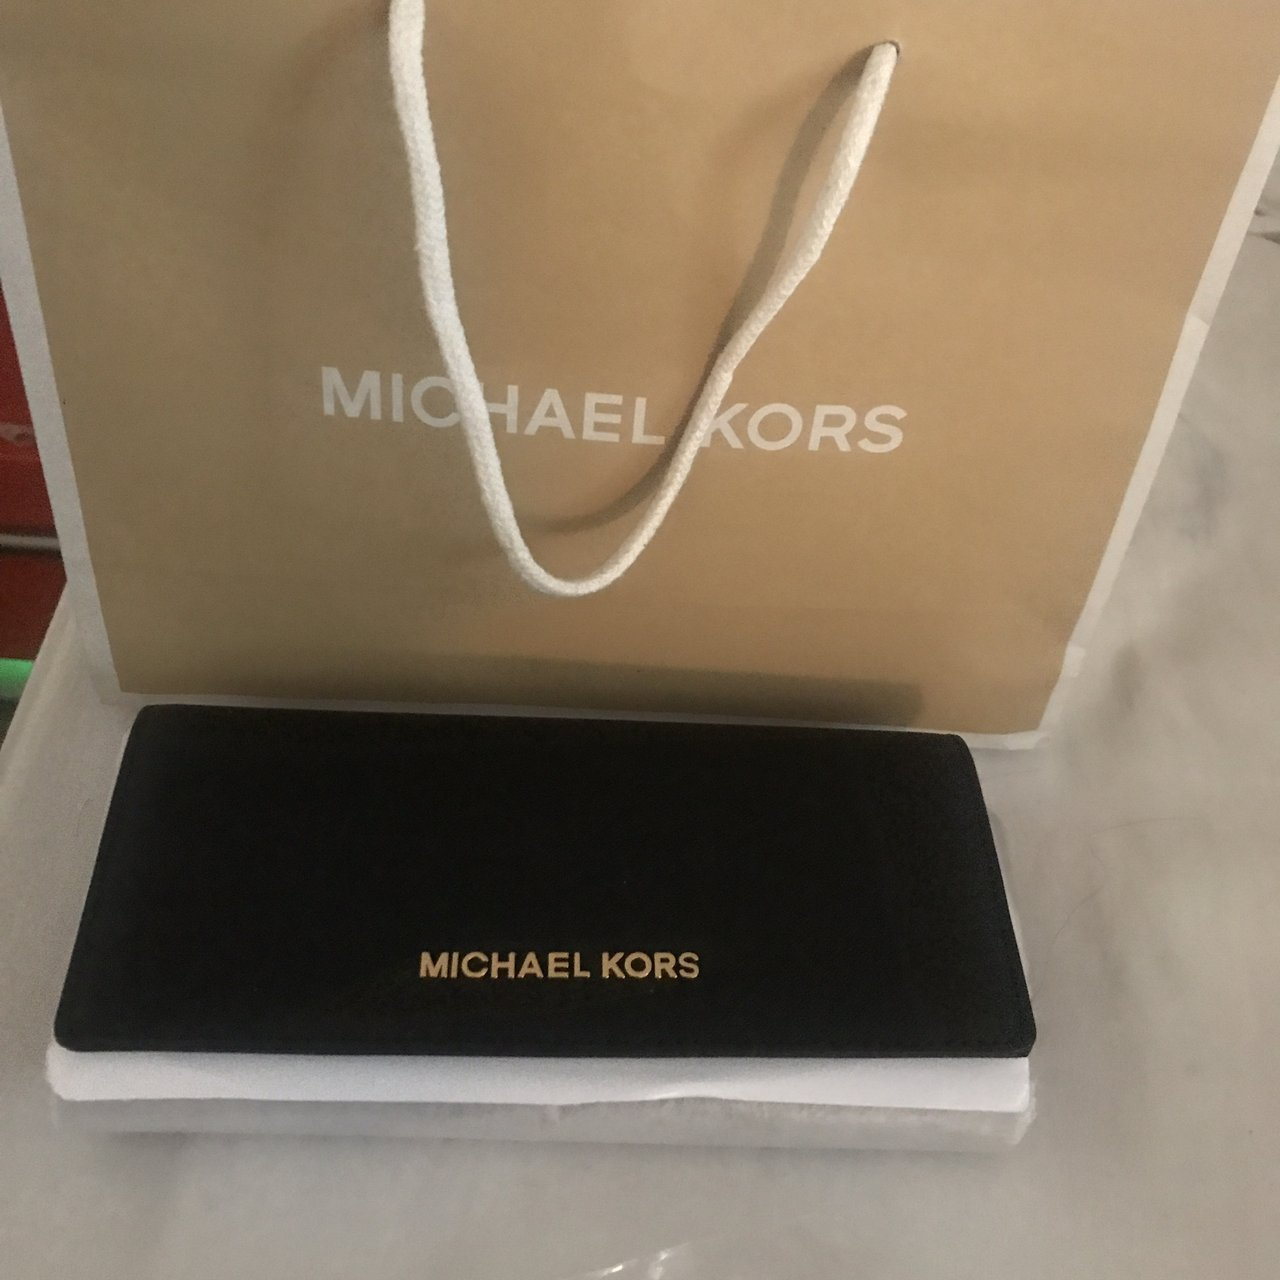 d77c4d444397 BRAND NEW MICHAEL KORS PURSE with original packaging and tag - Depop